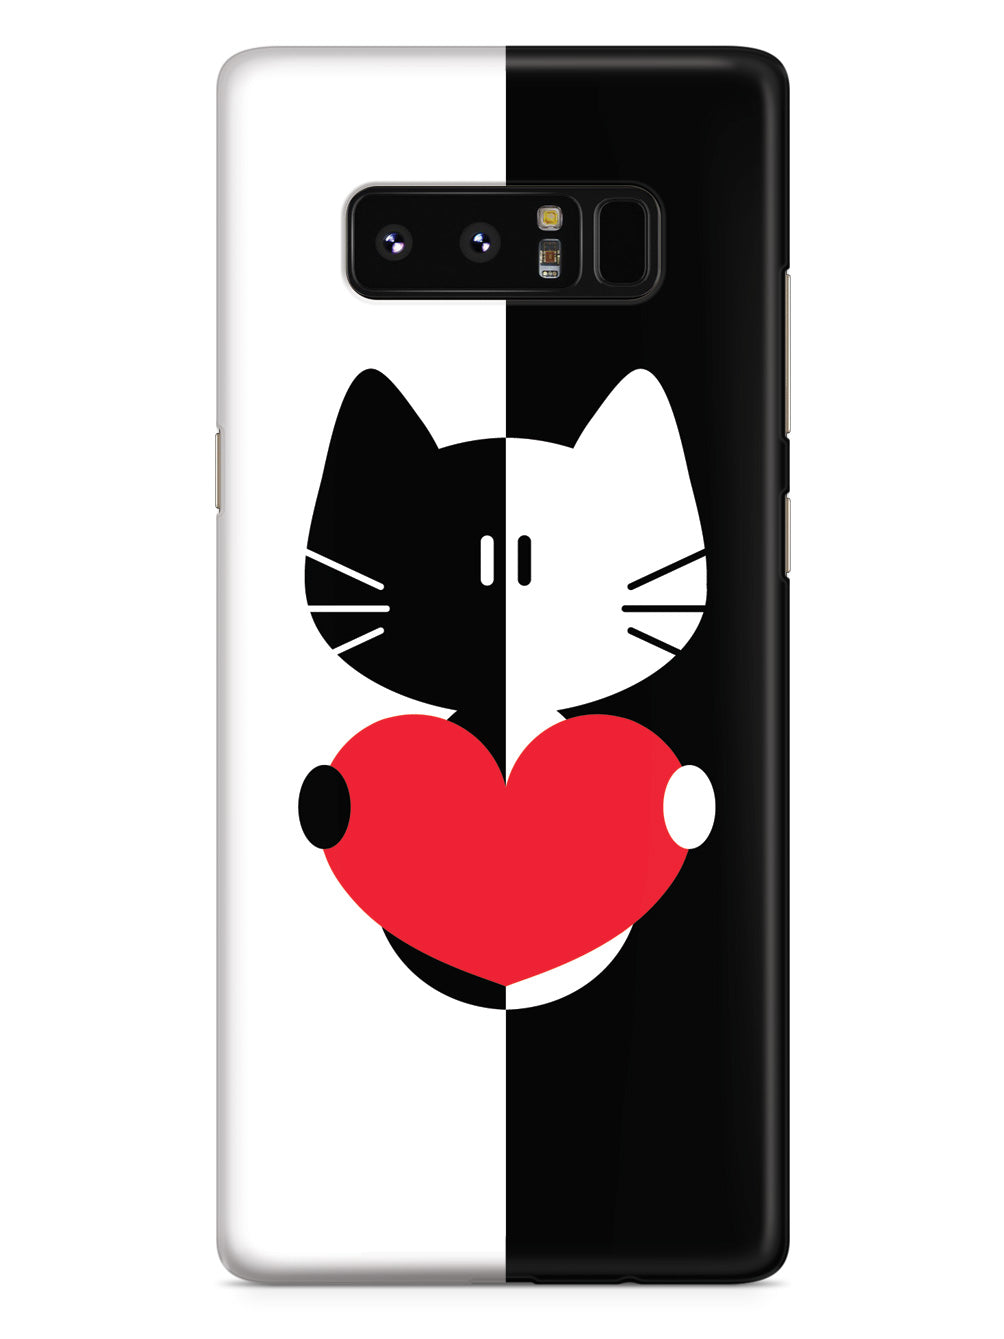 Black & White Cartoon Cat Heart - White Case